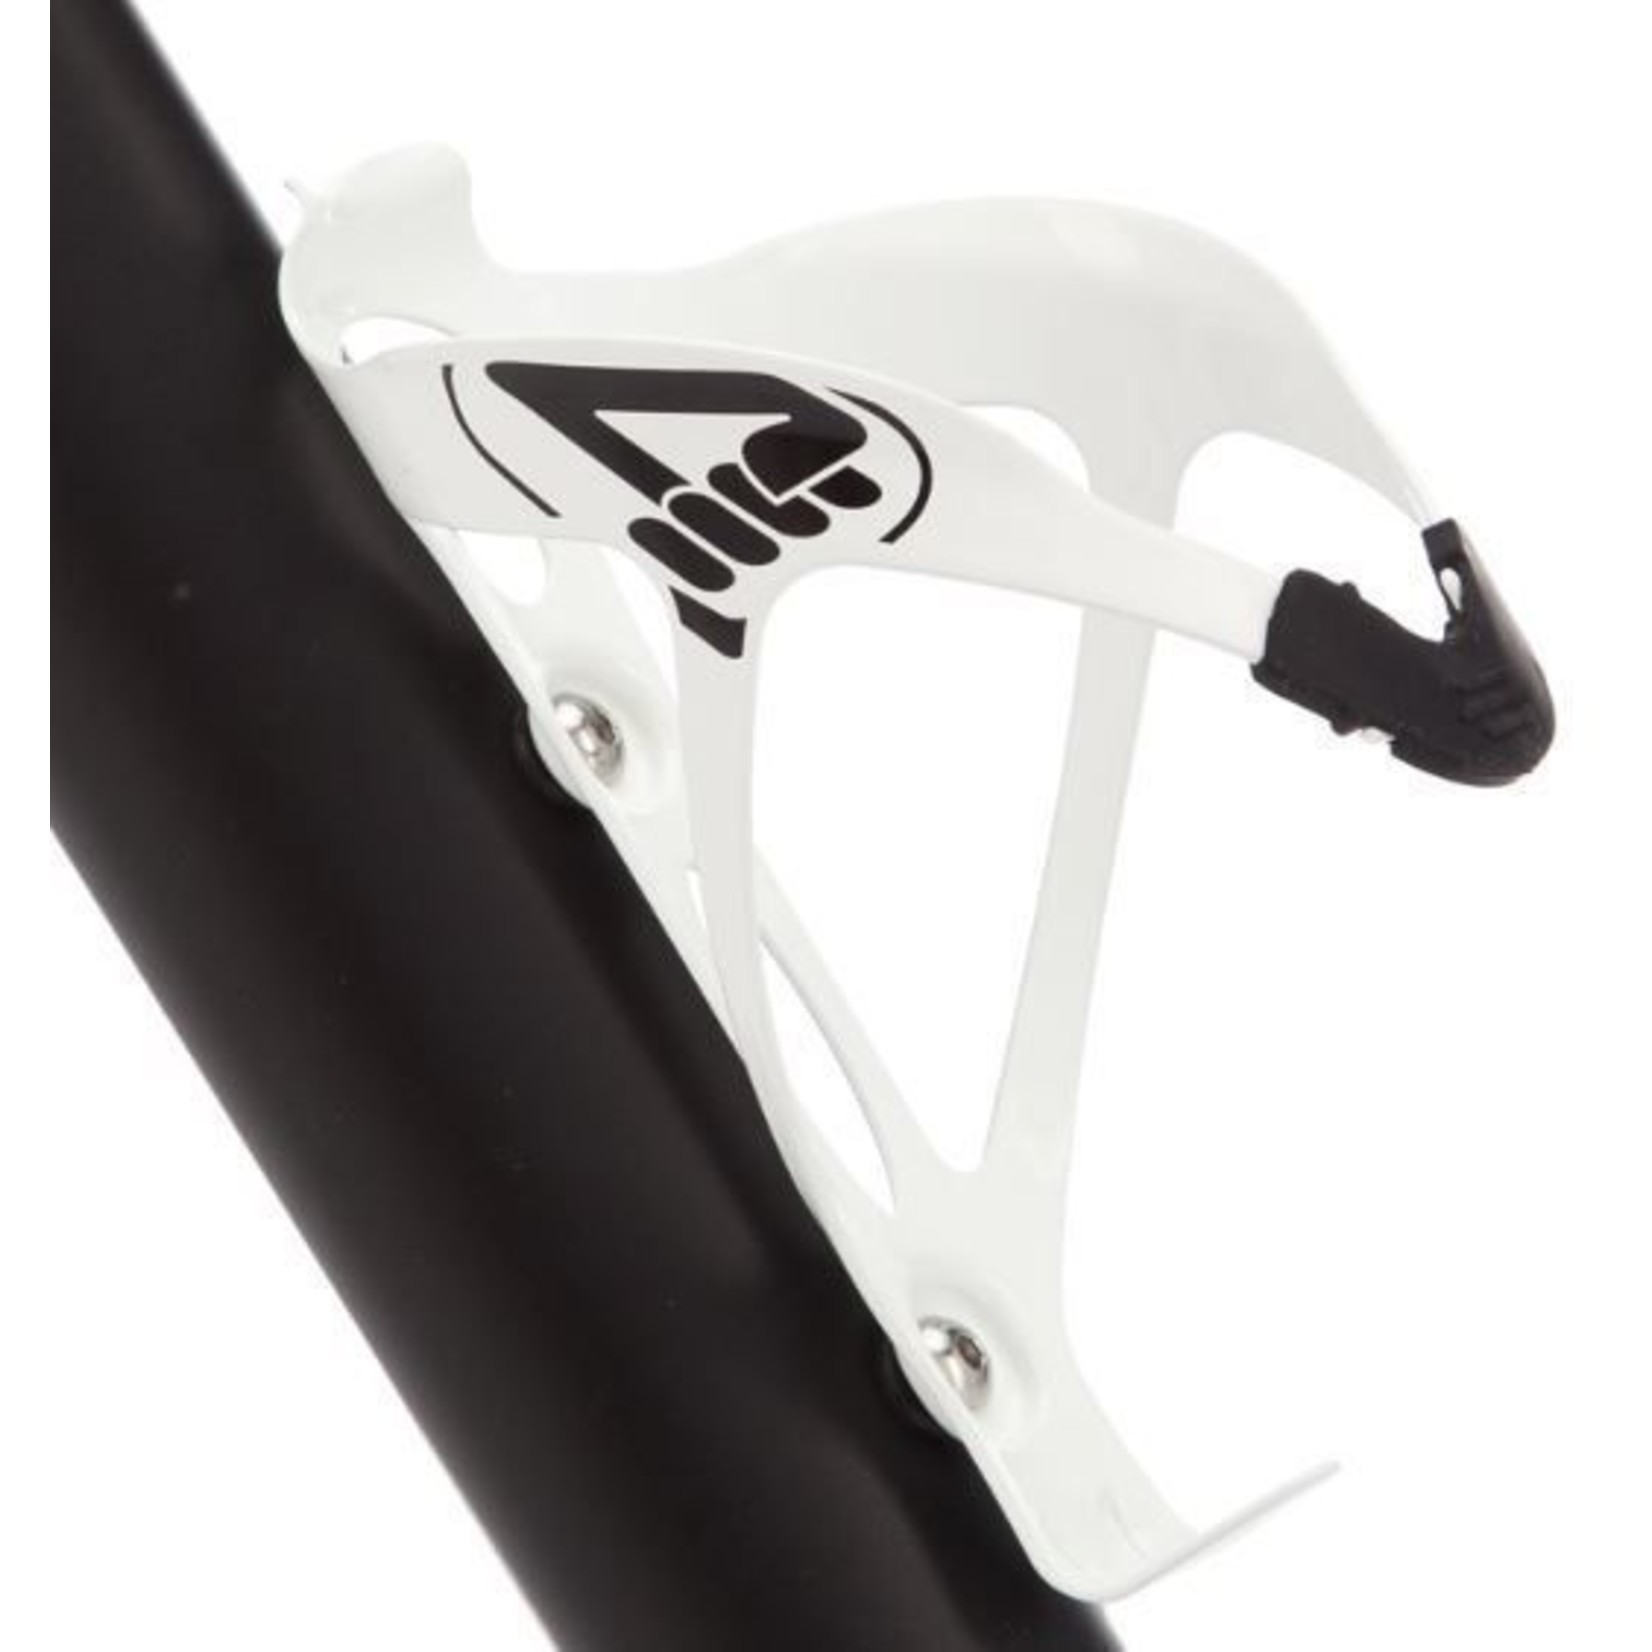 FORZA CIRRUS BOTTLE CAGE